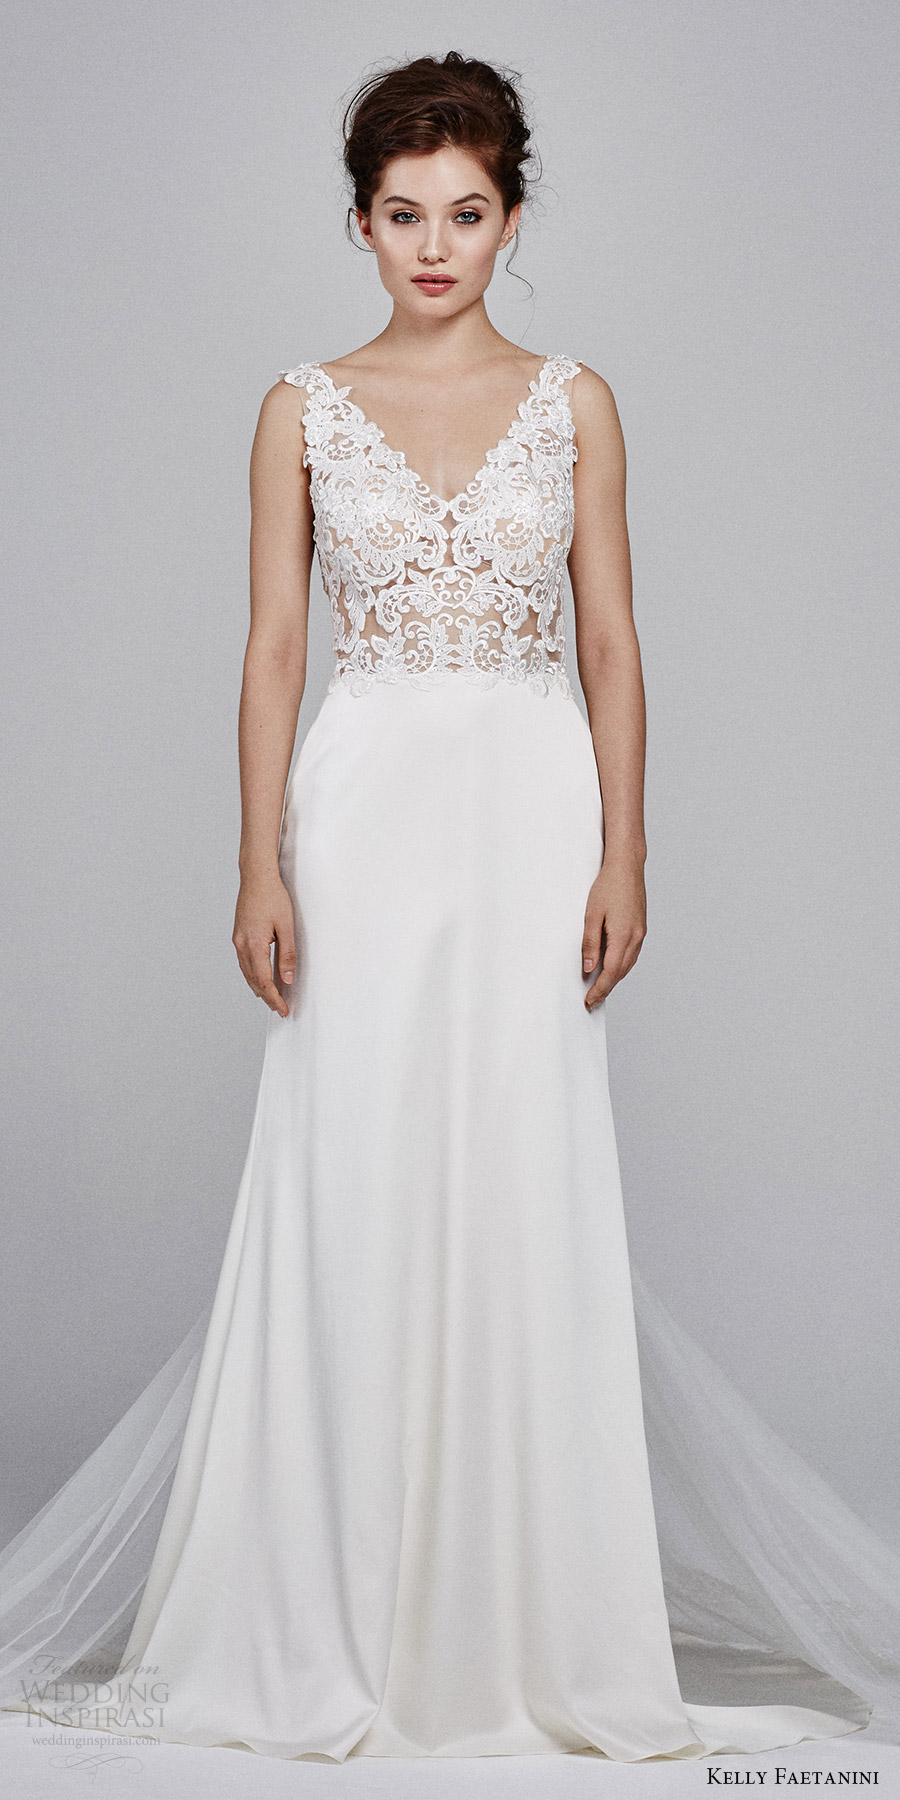 kelly faetanini bridal fall 2017 sleeveless vneck stretch satin lace bodice aline wedding dress (leilani) mv train